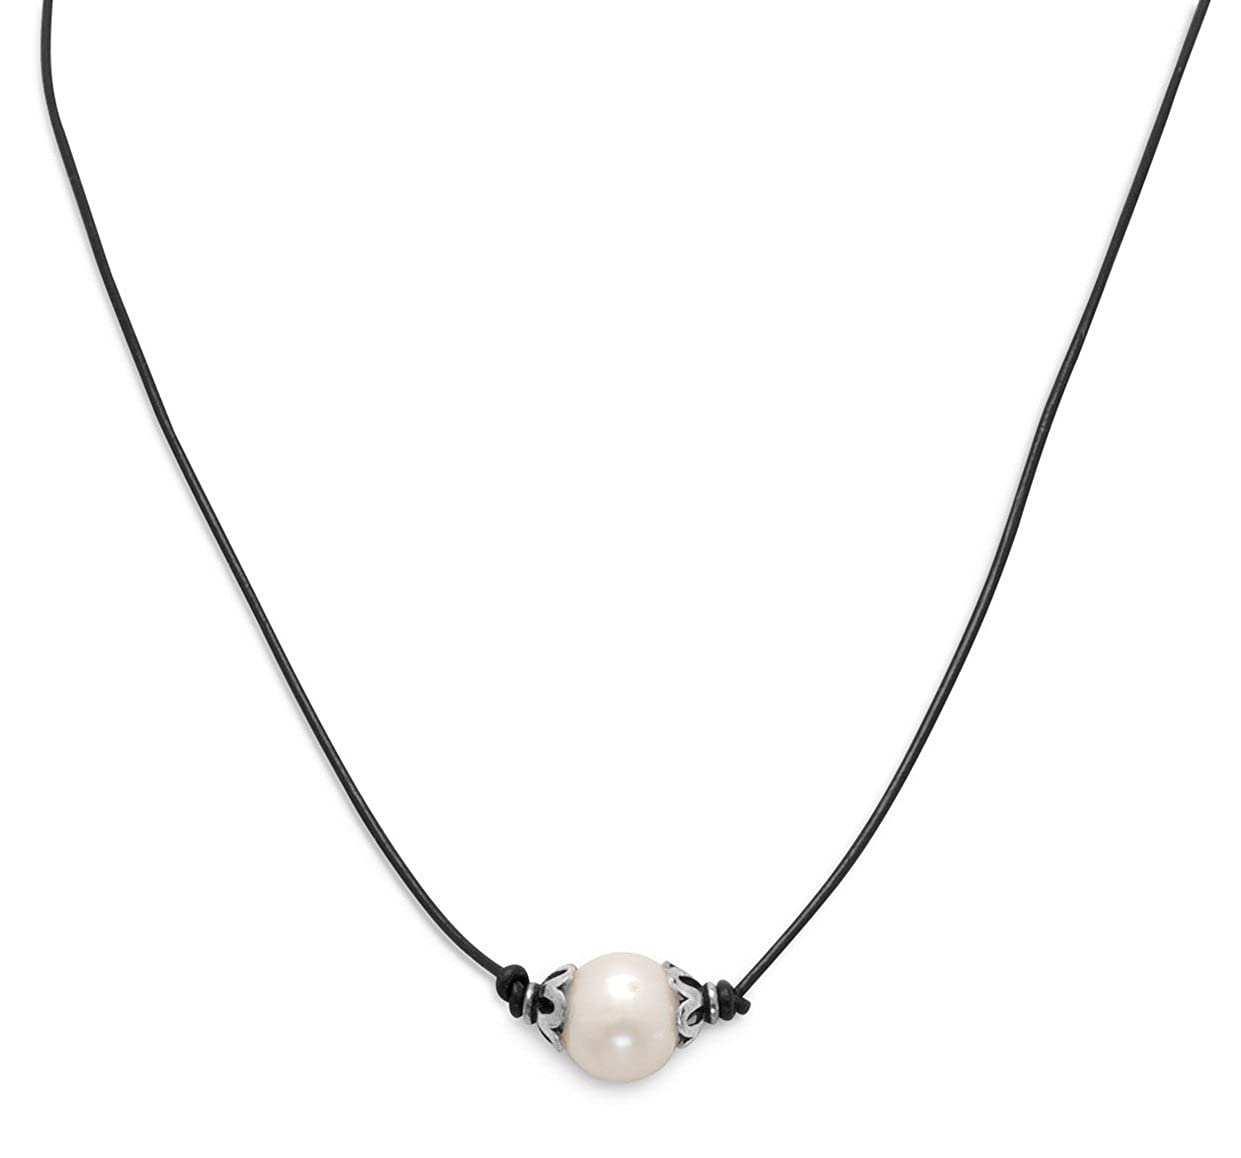 16 inch Leather//Sterling Silver Necklace 9mm Bleached White Cultured Freshwater Potato Pearls